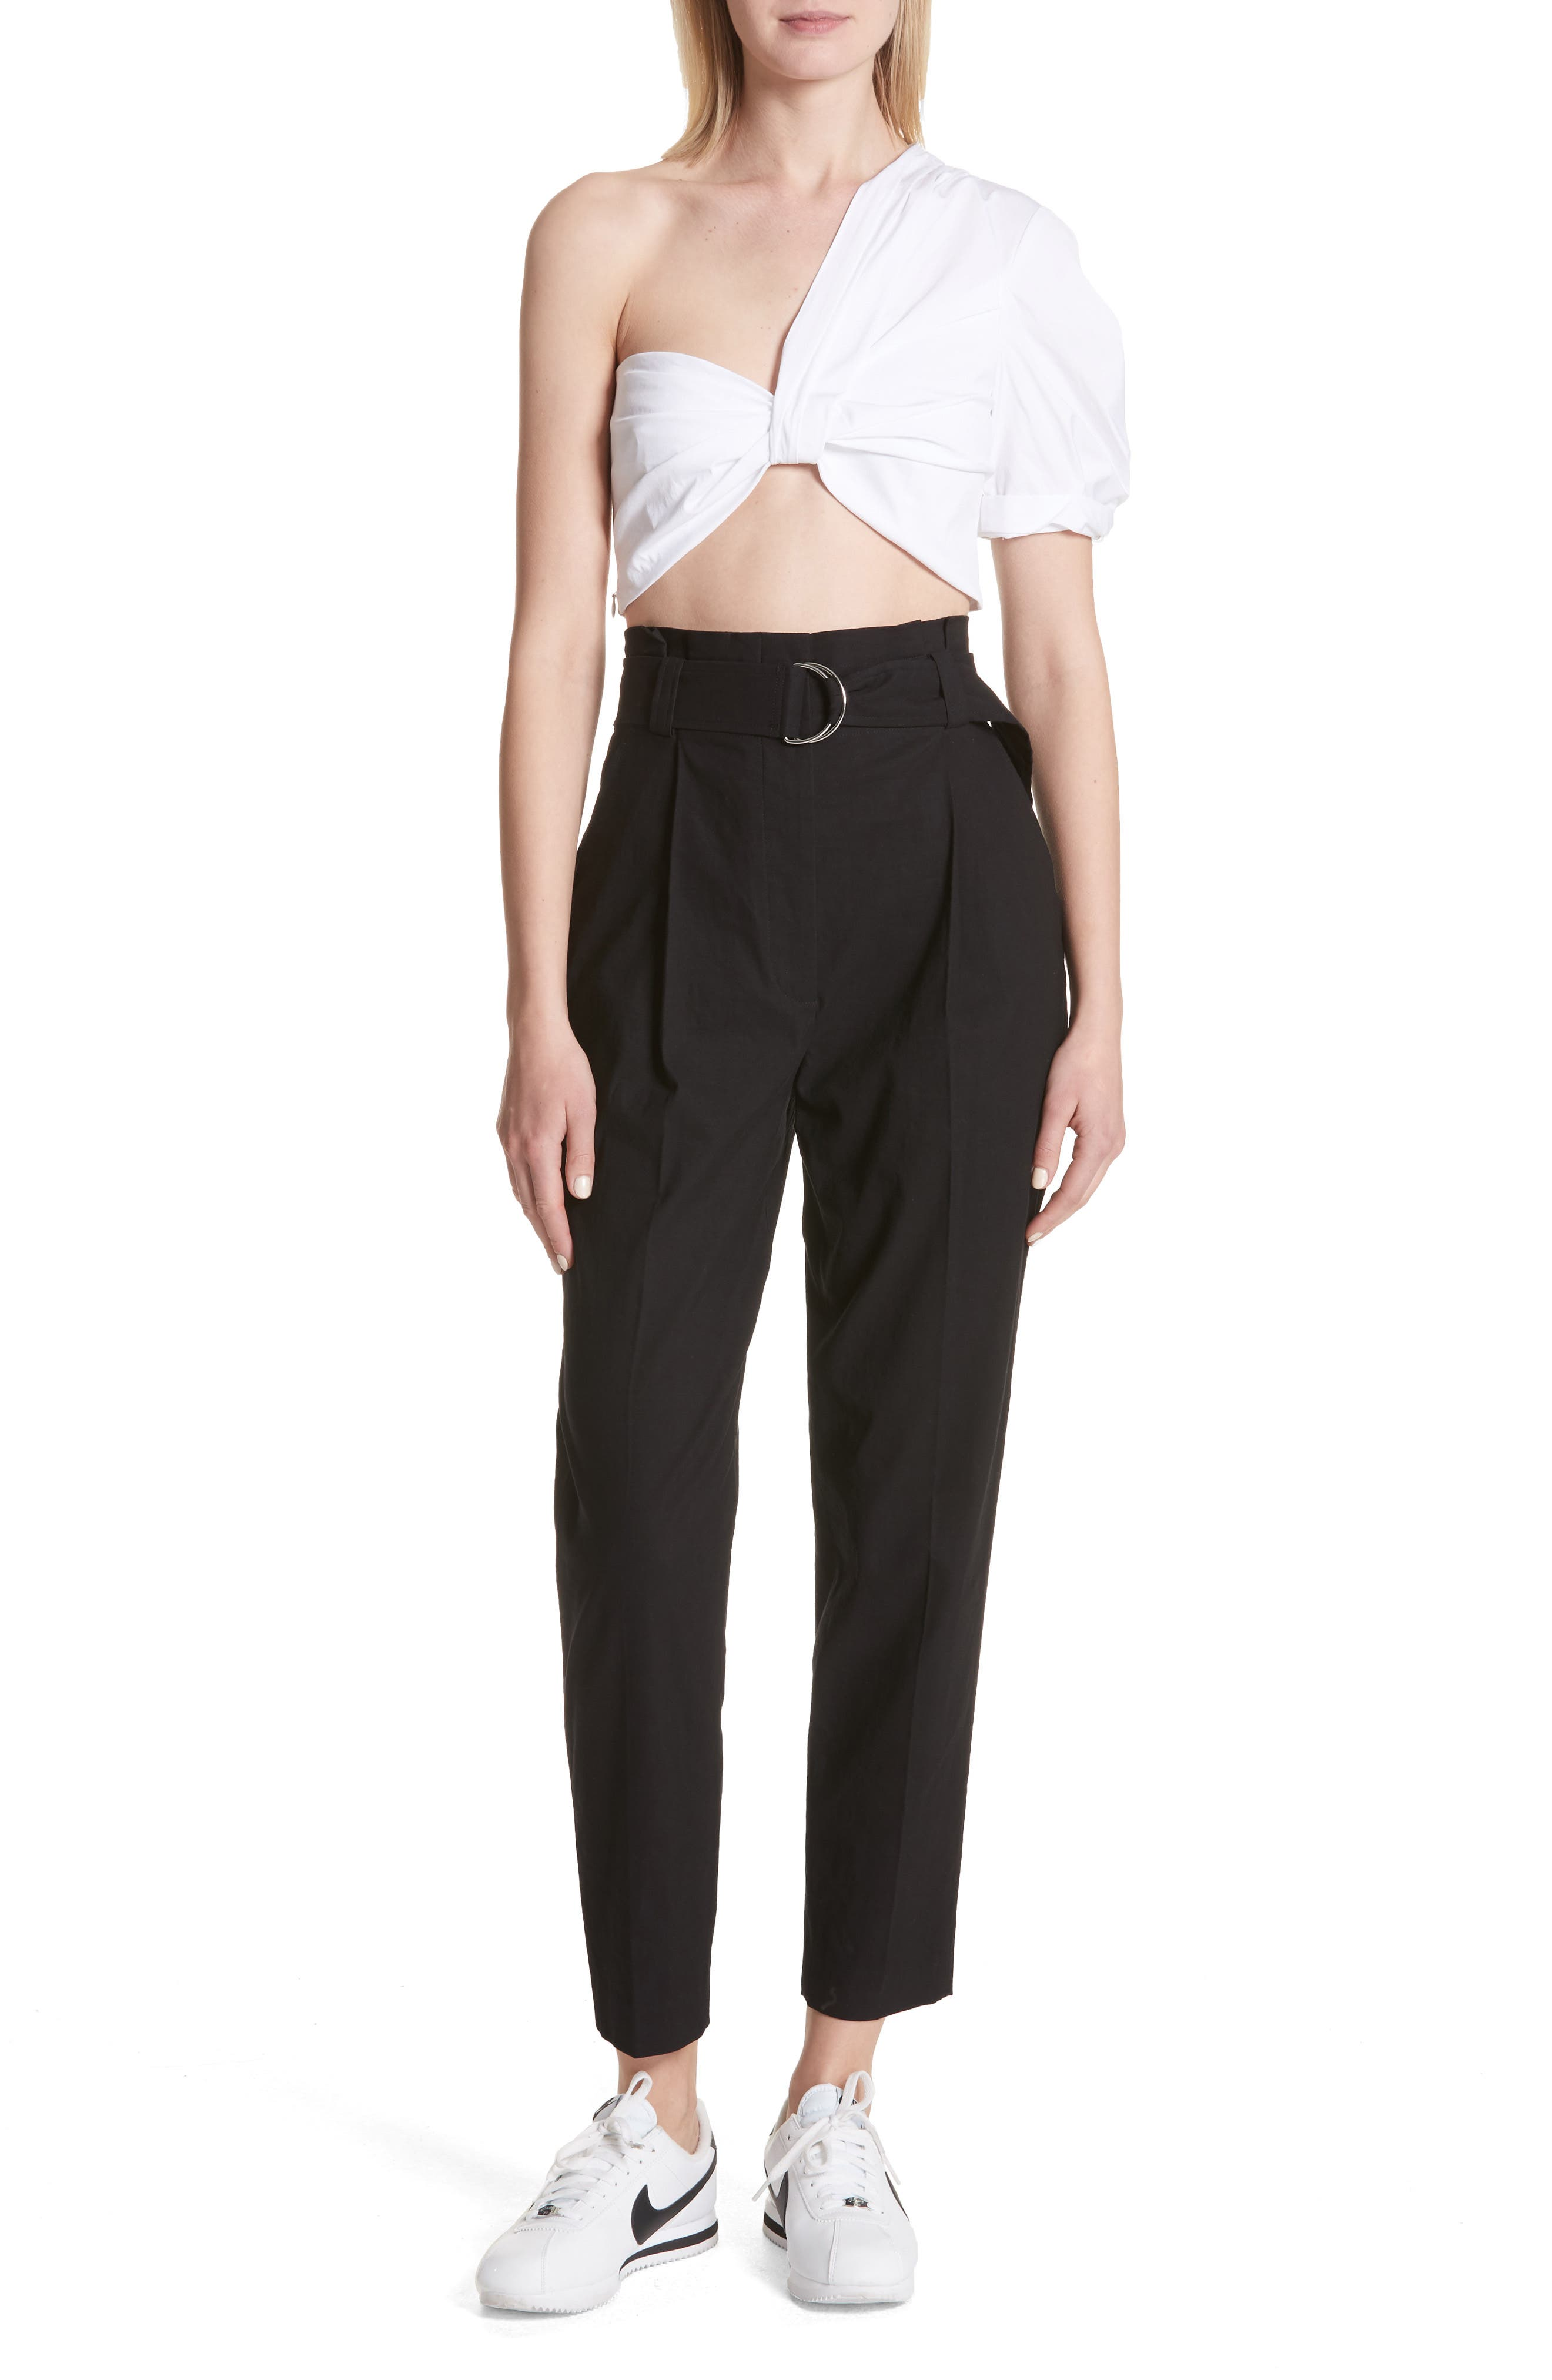 Diego High Waist Pants,                             Alternate thumbnail 7, color,                             Black